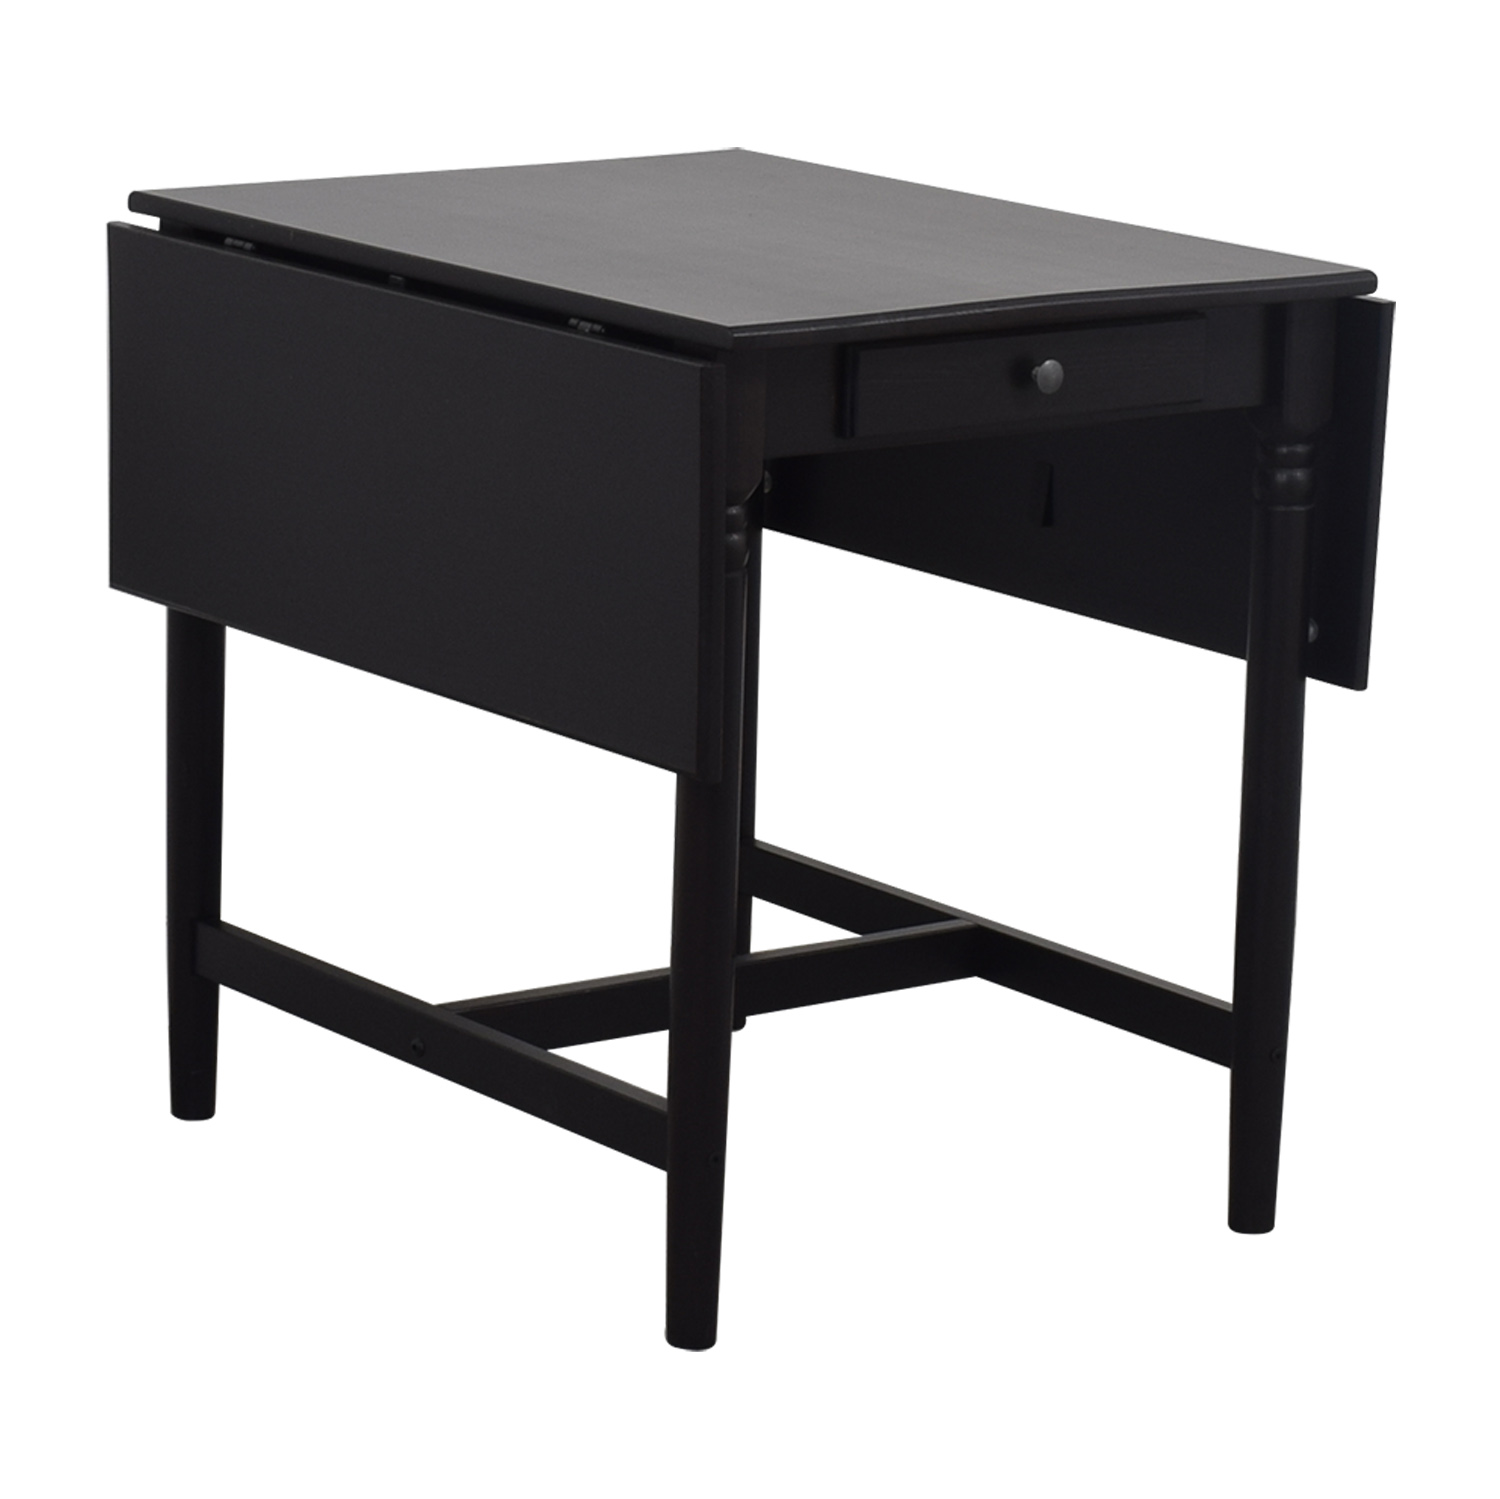 Ikea Leaf Table 52% Off - Ikea Ikea Ingatorp Drop Leaf Table / Tables